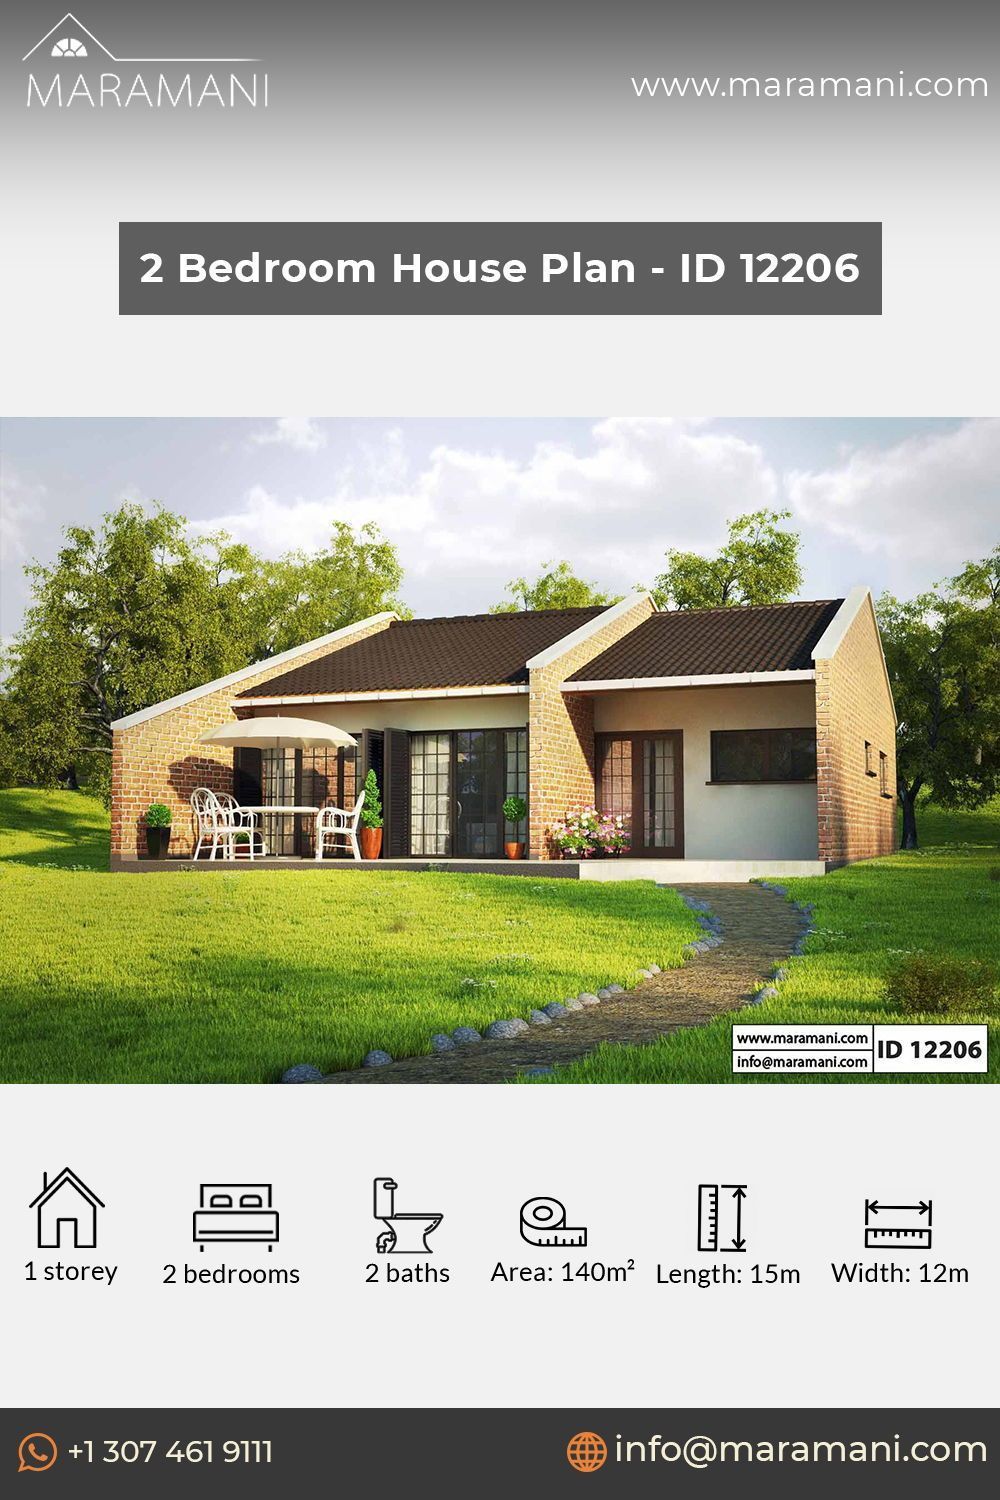 Small Brick House Design Id 12206 House Plans By Maramani Brick House Designs 1 Bedroom House Plans Bedroom House Plans